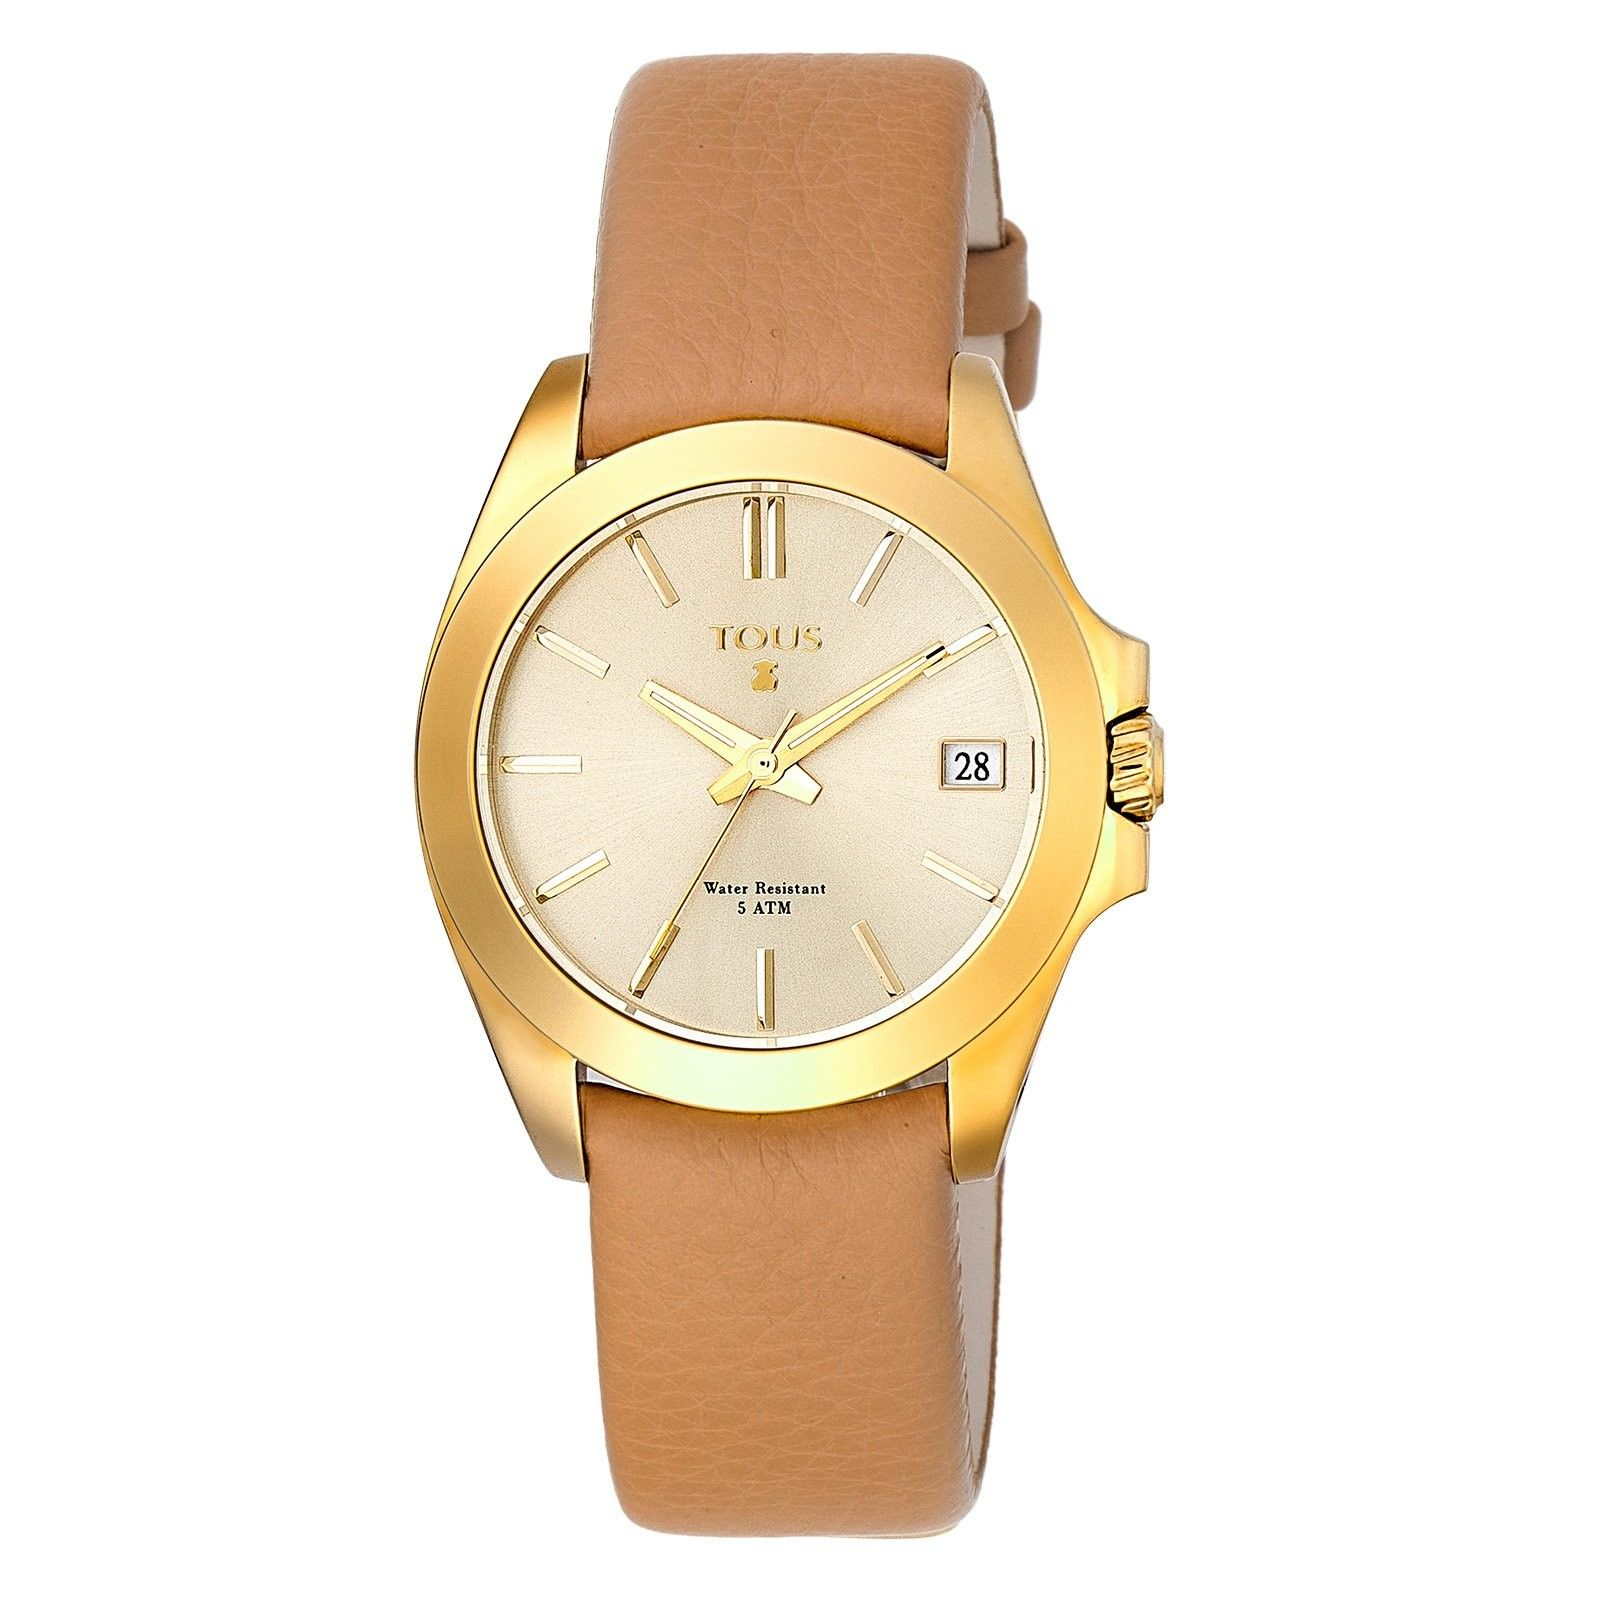 15+ Do jewelry stores buy watches information